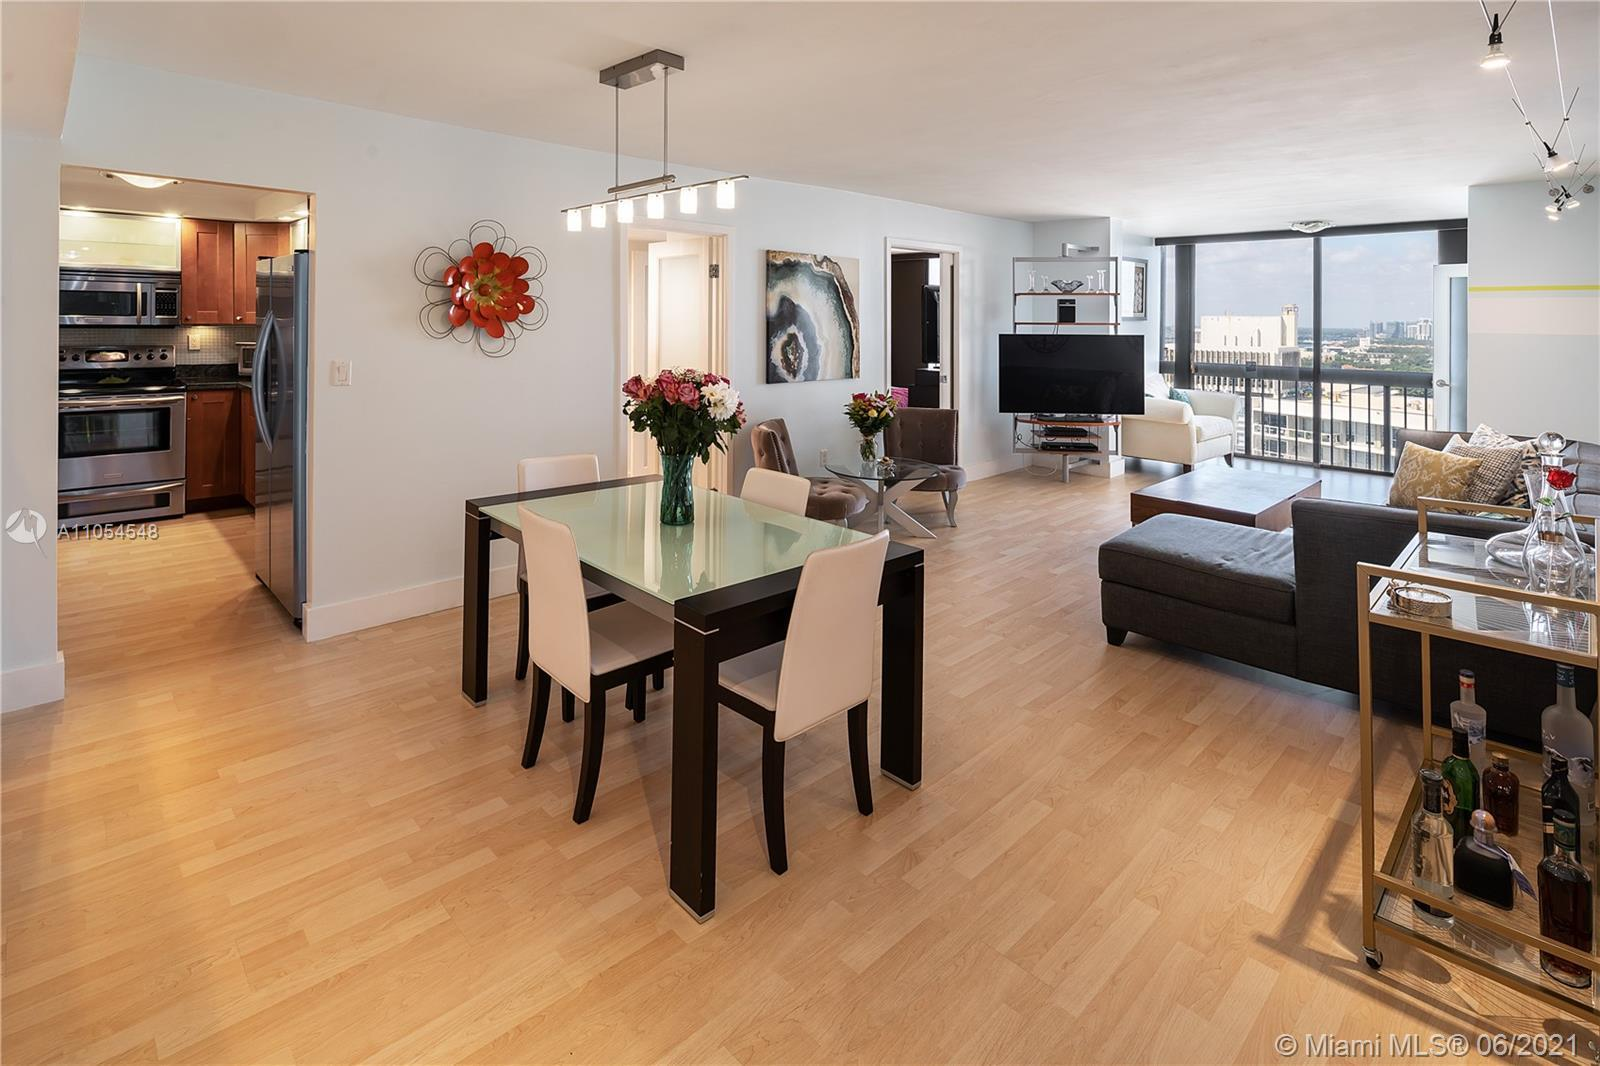 Move in Ready Unit on most desired south end of Brickell Avenue. This Waterfront apt has 2 Bedroom/